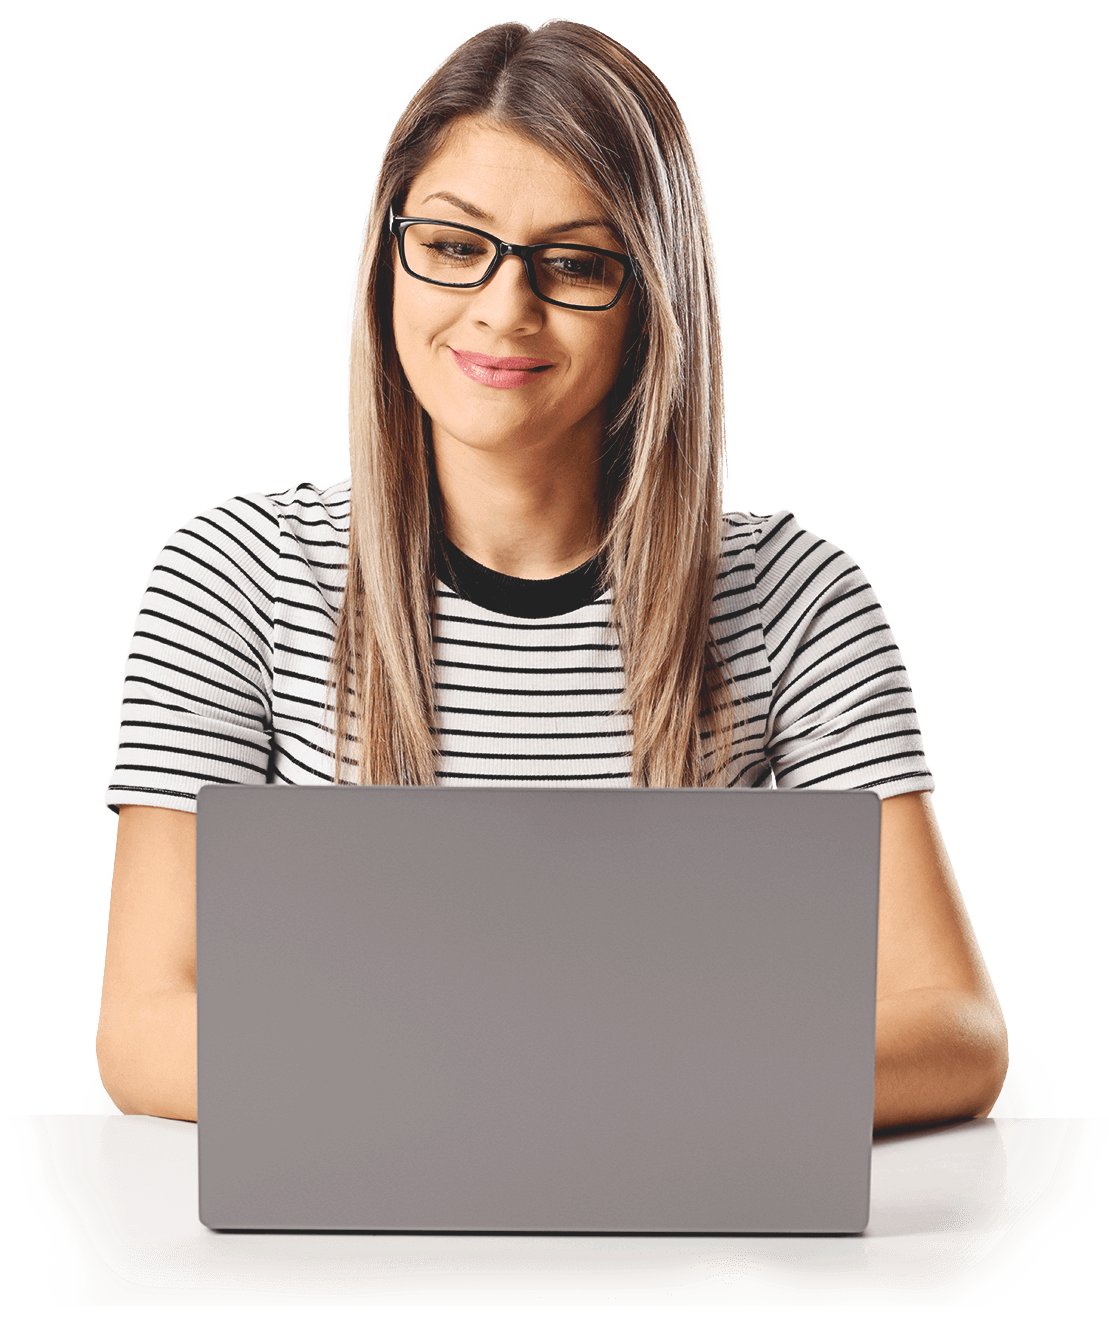 A young woman in glasses and a striped shirt with long blonde hair sitting in front of a laptop.